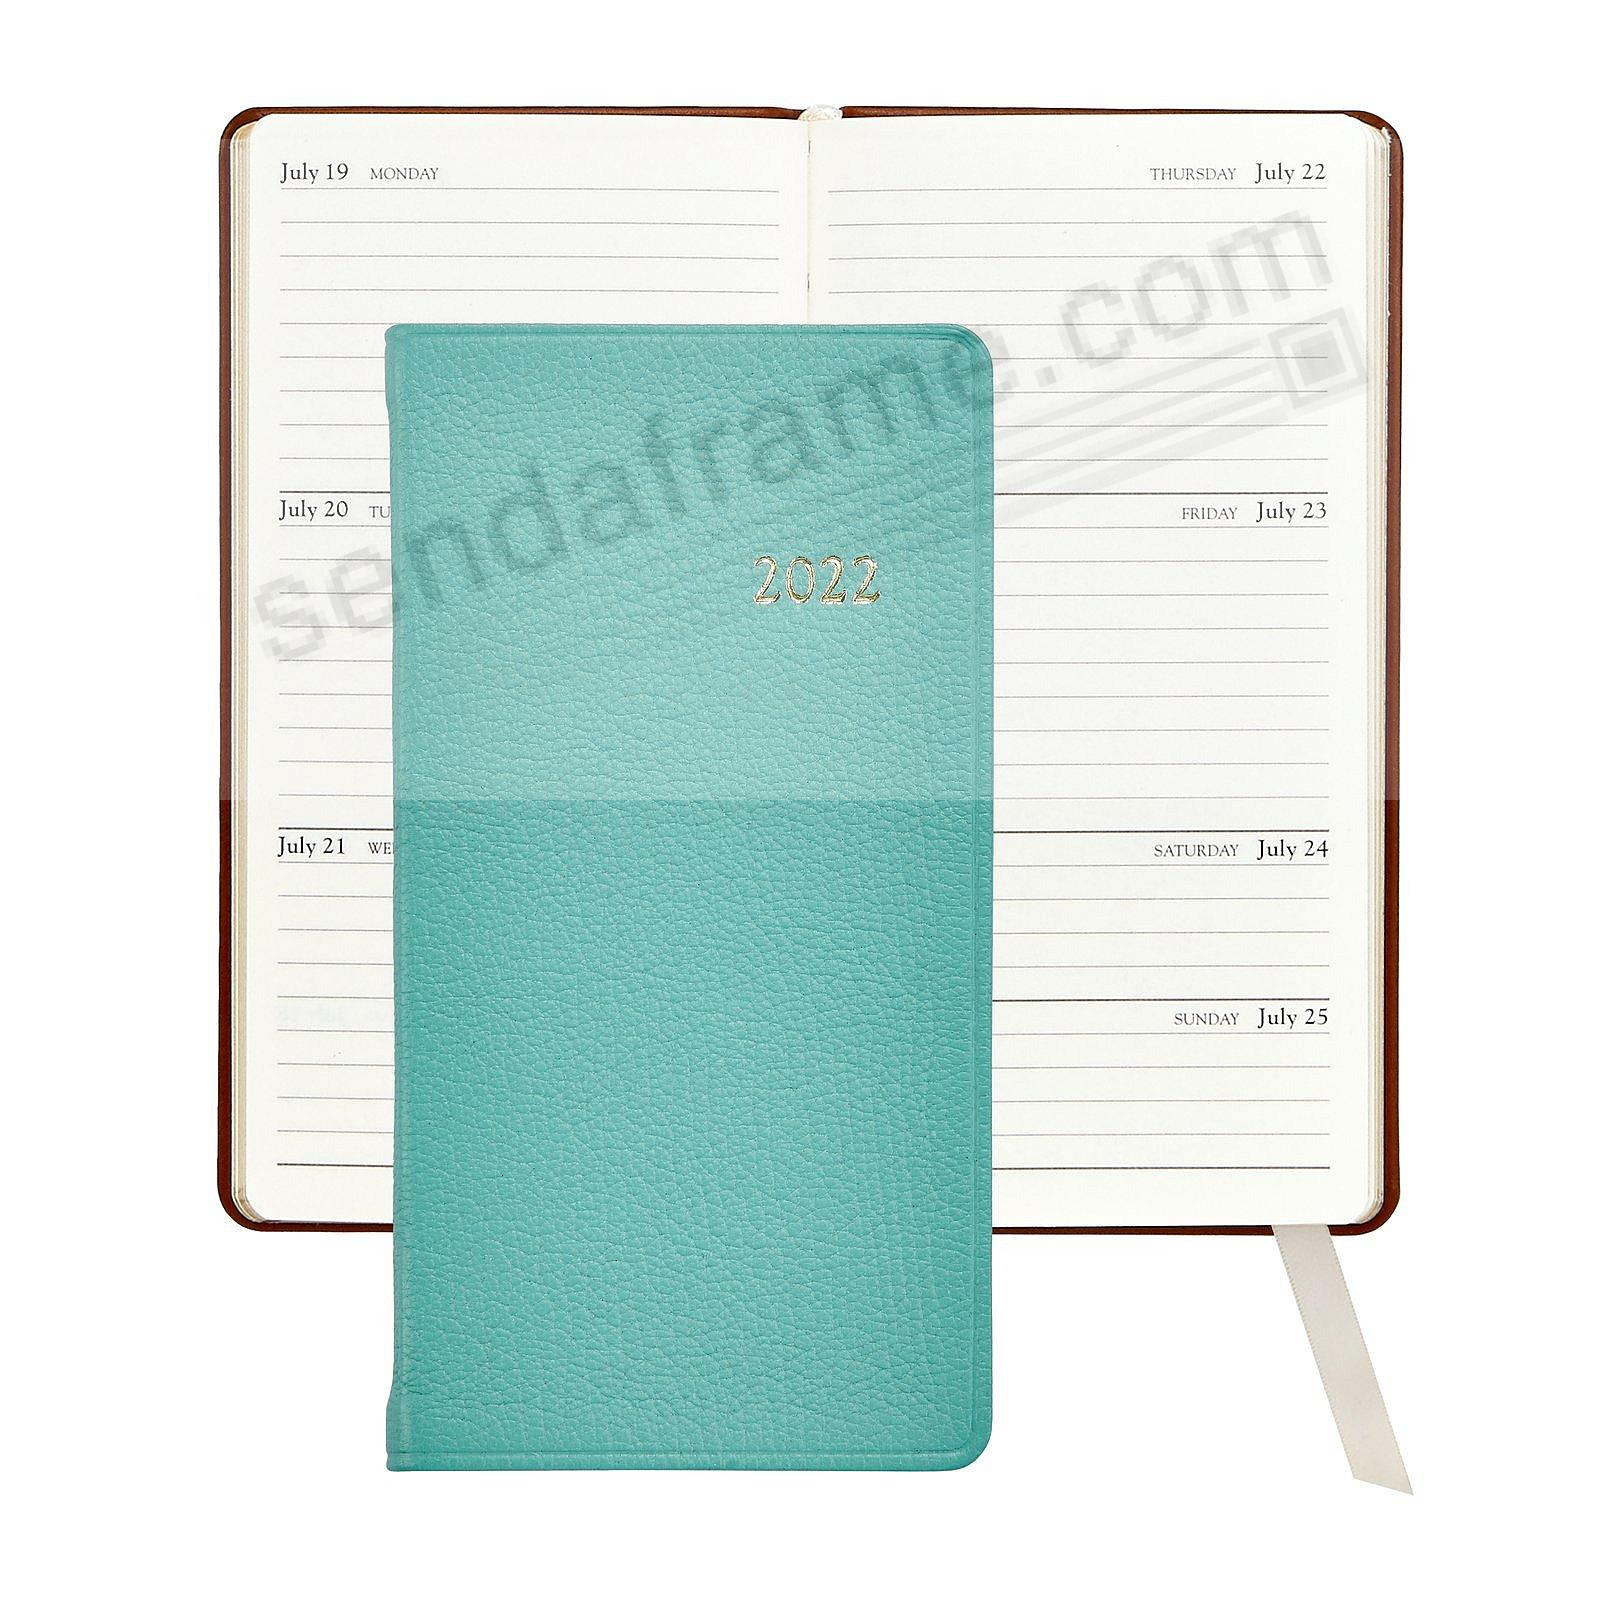 2017 ROBINS-EGG BLUE 6in Pocket Datebook Diary Goatskin Leather by Graphic Image™